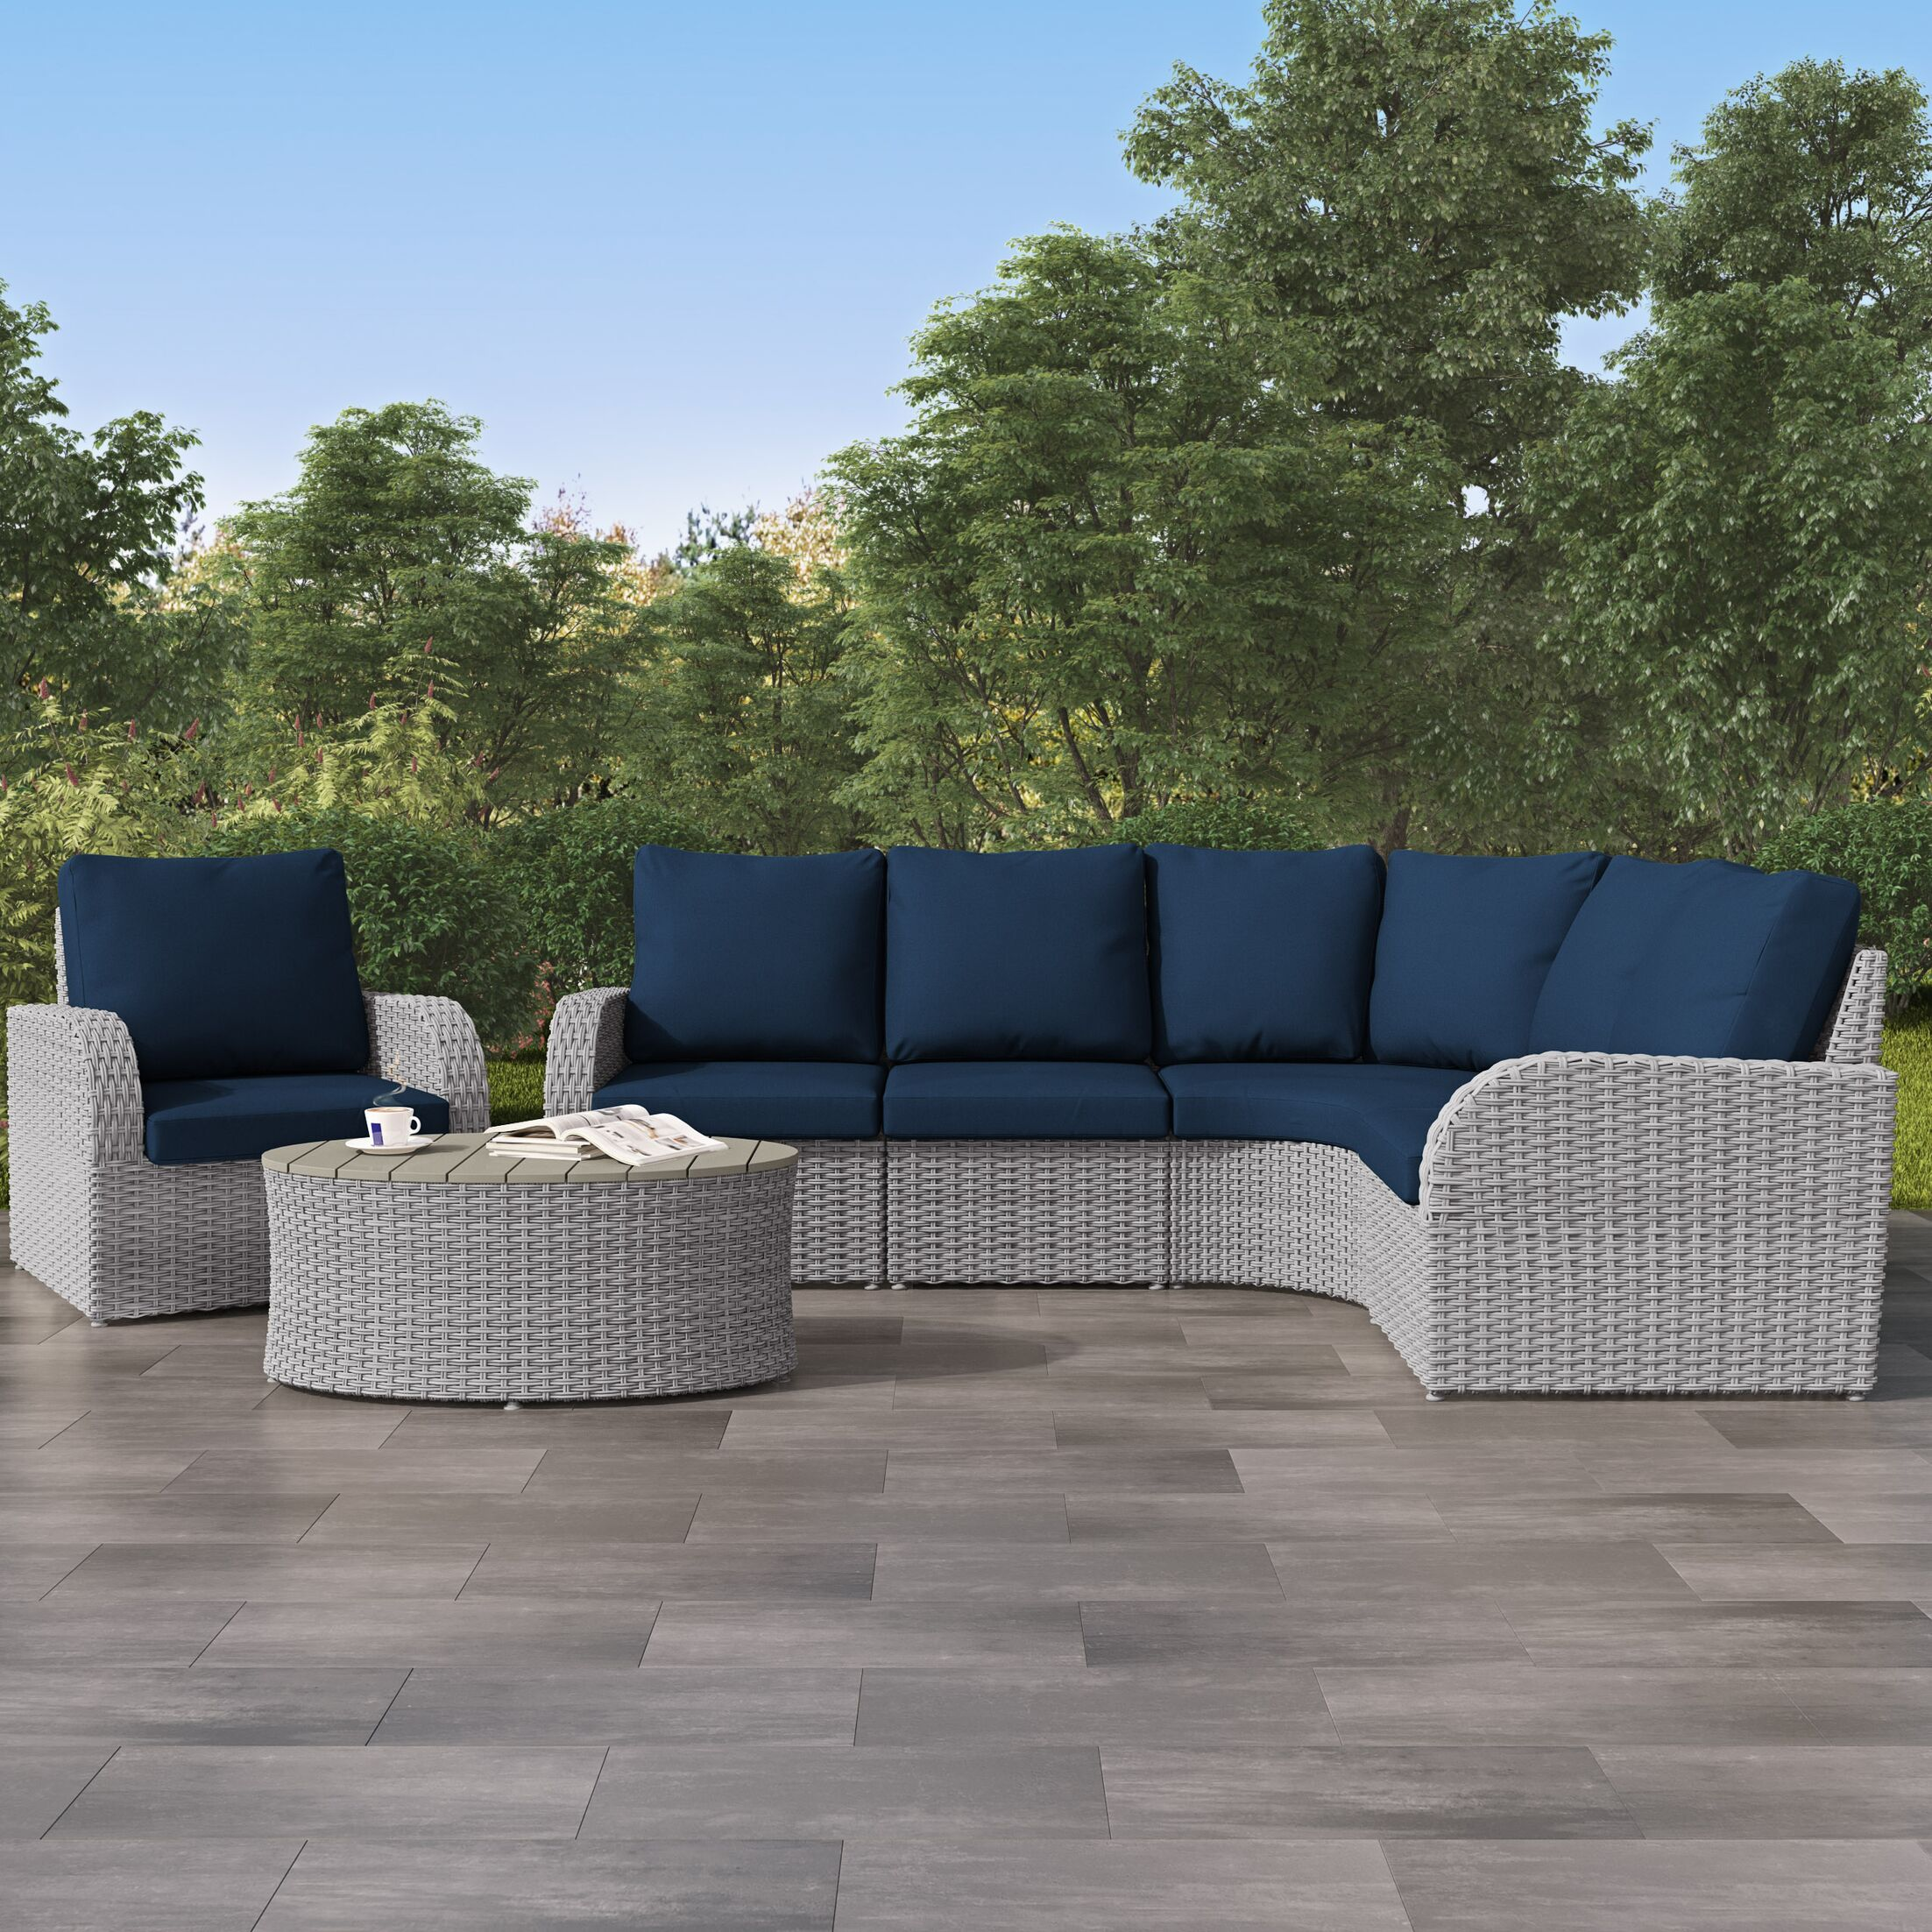 Costanzo 6 Piece Rattan Sectional Set with Cushions Color: Navy Blue